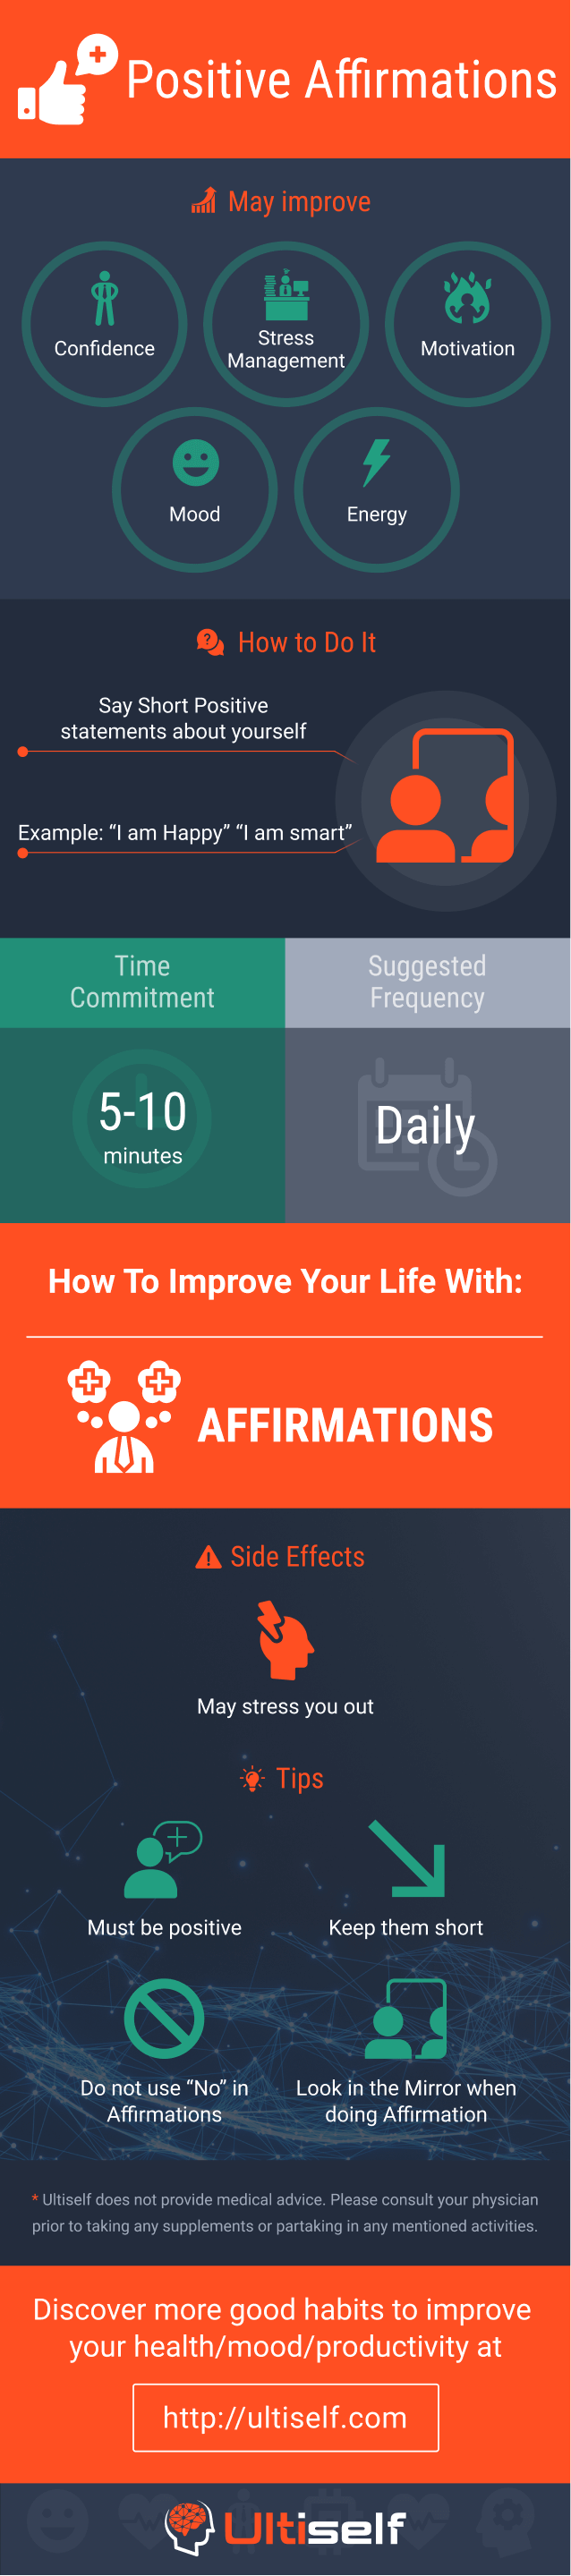 Positive Affirmations infographic